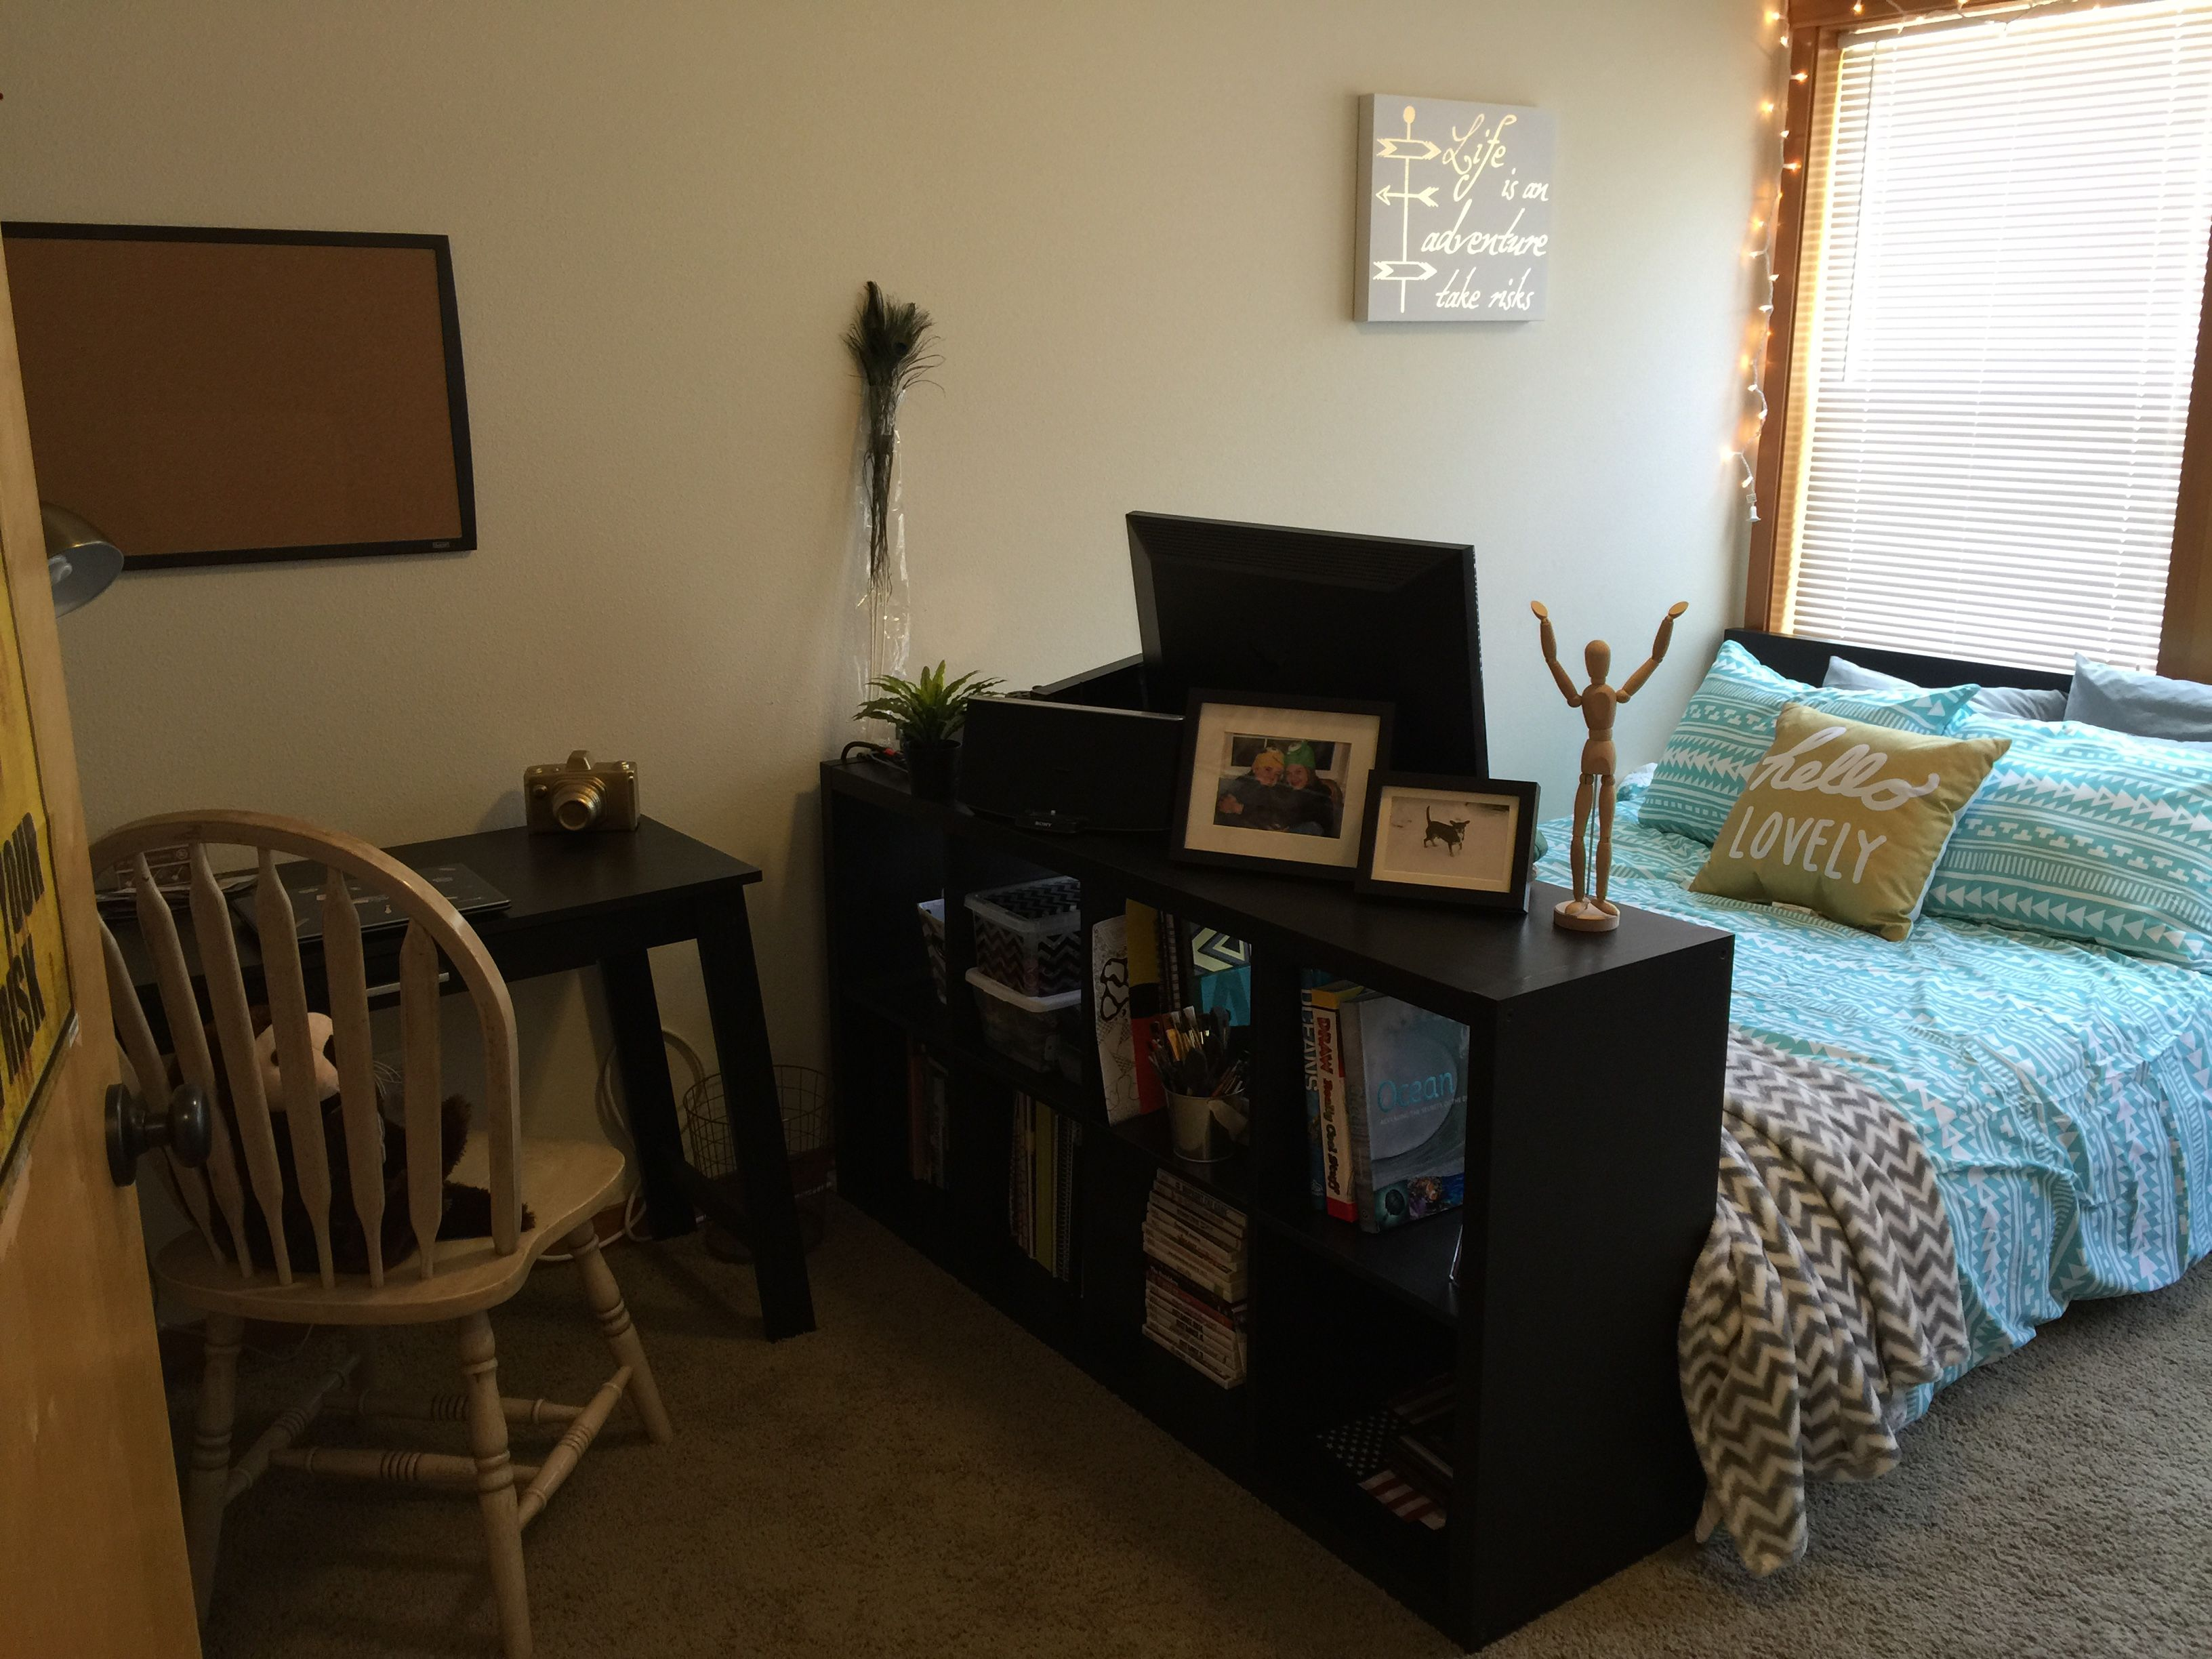 For my daughters 16th birthday, I redecorated her whole room as a surprise! (To really appreciate you would have to see the before pics). I used string lights, canvas', her colors are Aqua, gray & gold, chevrons & Aztec bedding